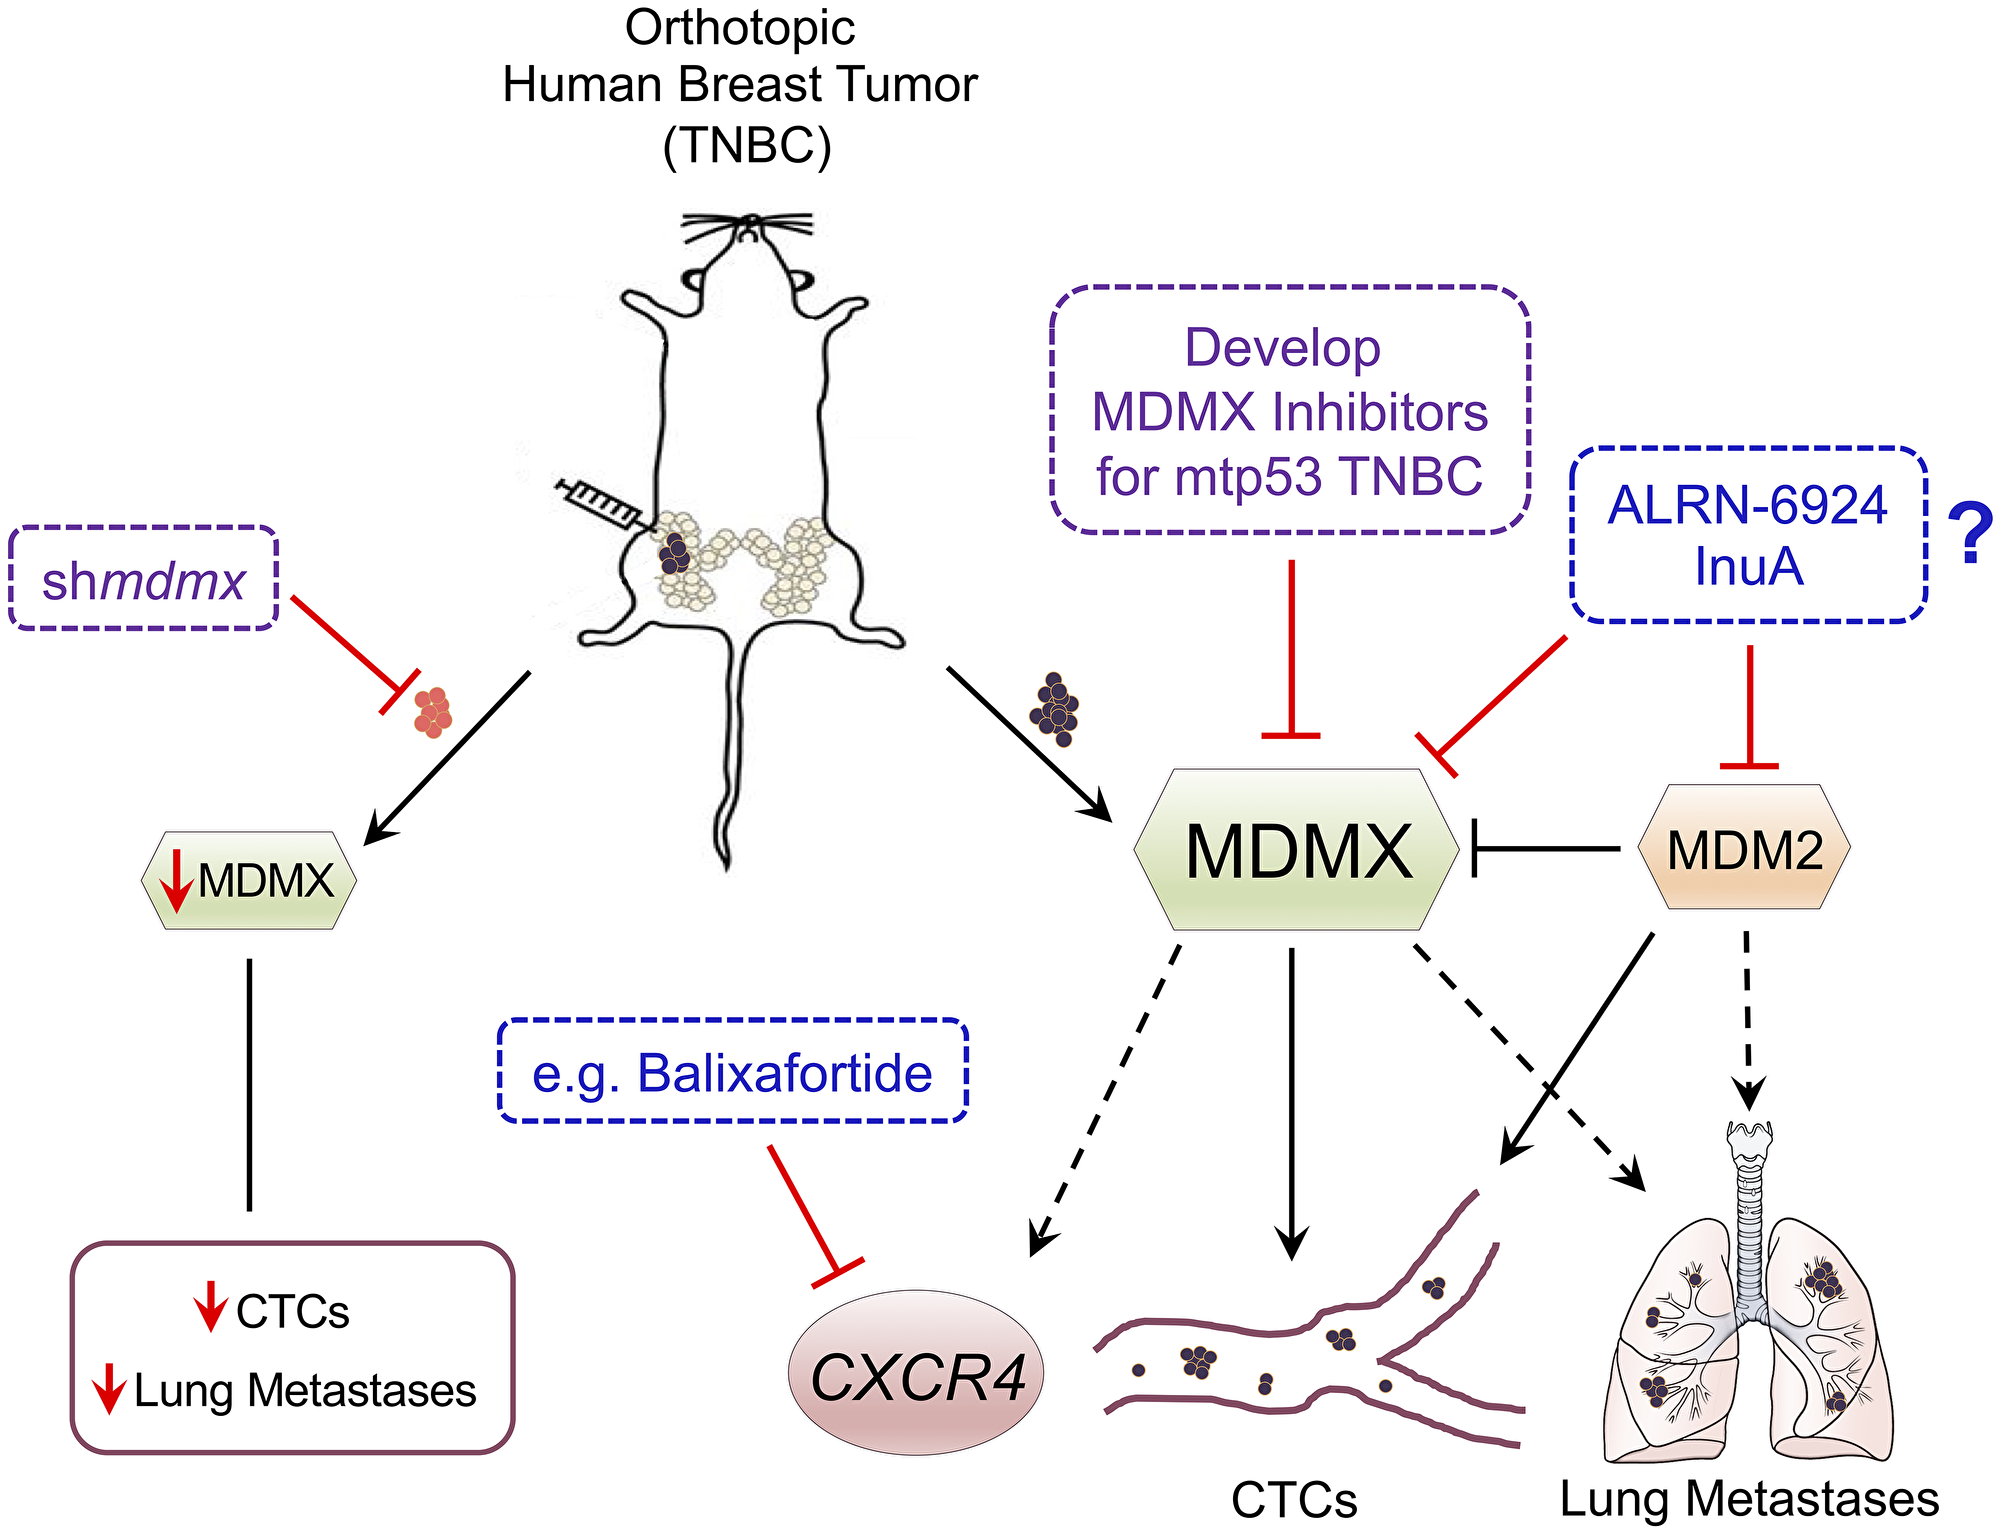 Schematic of MDMX promoting TNBC metastasis and proposed targeting strategies.